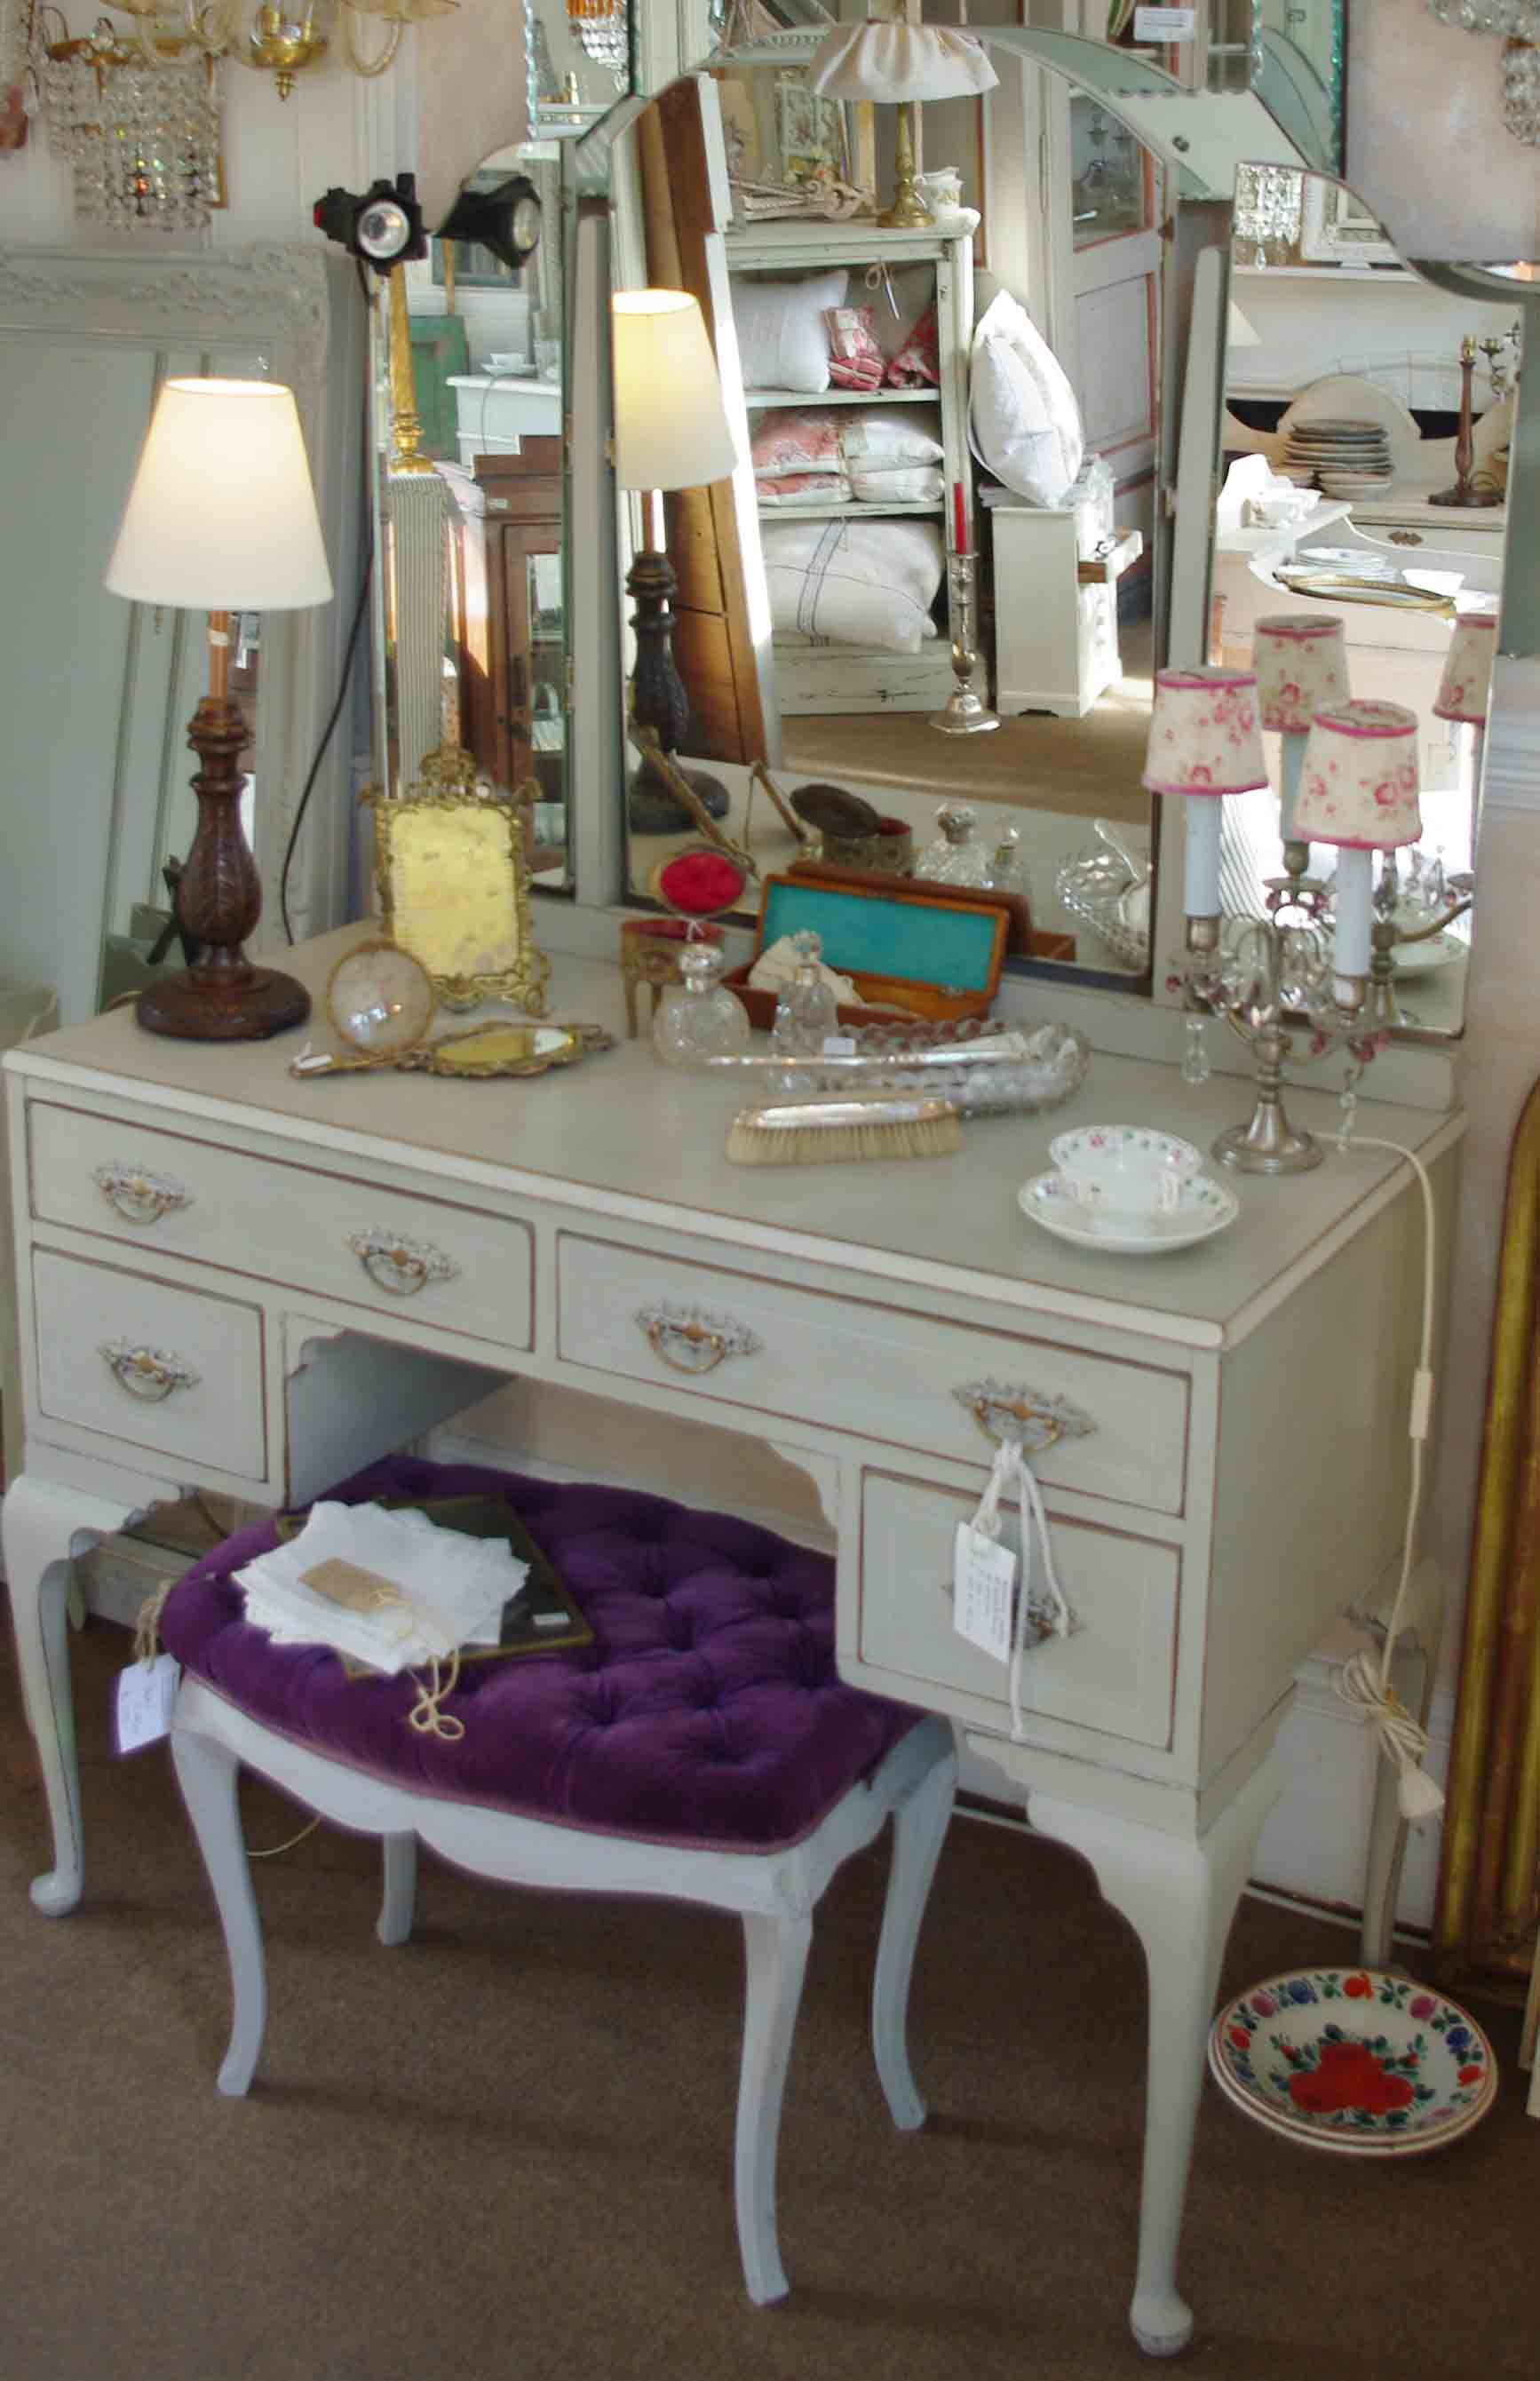 Bedroom furniture dressing table stools - Furniture Inspiration With Vanity Table For Your Best Plans Purple Vanity Stool And Vintage Vanity